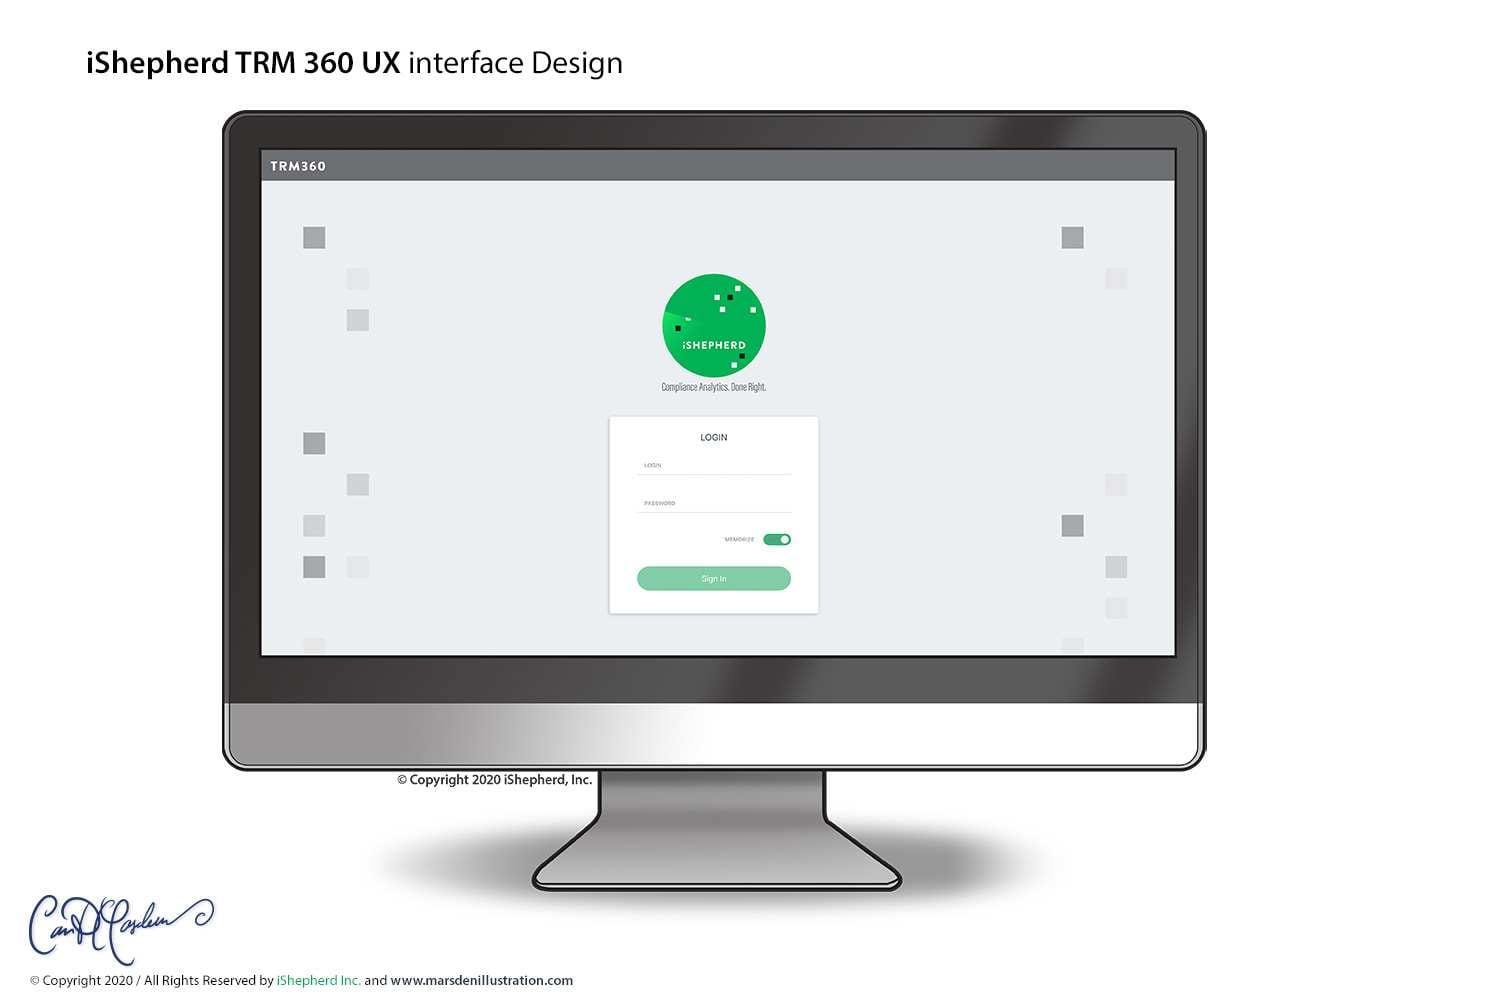 GUI and UX Design for TRM360 Software - iShepherd Inc.